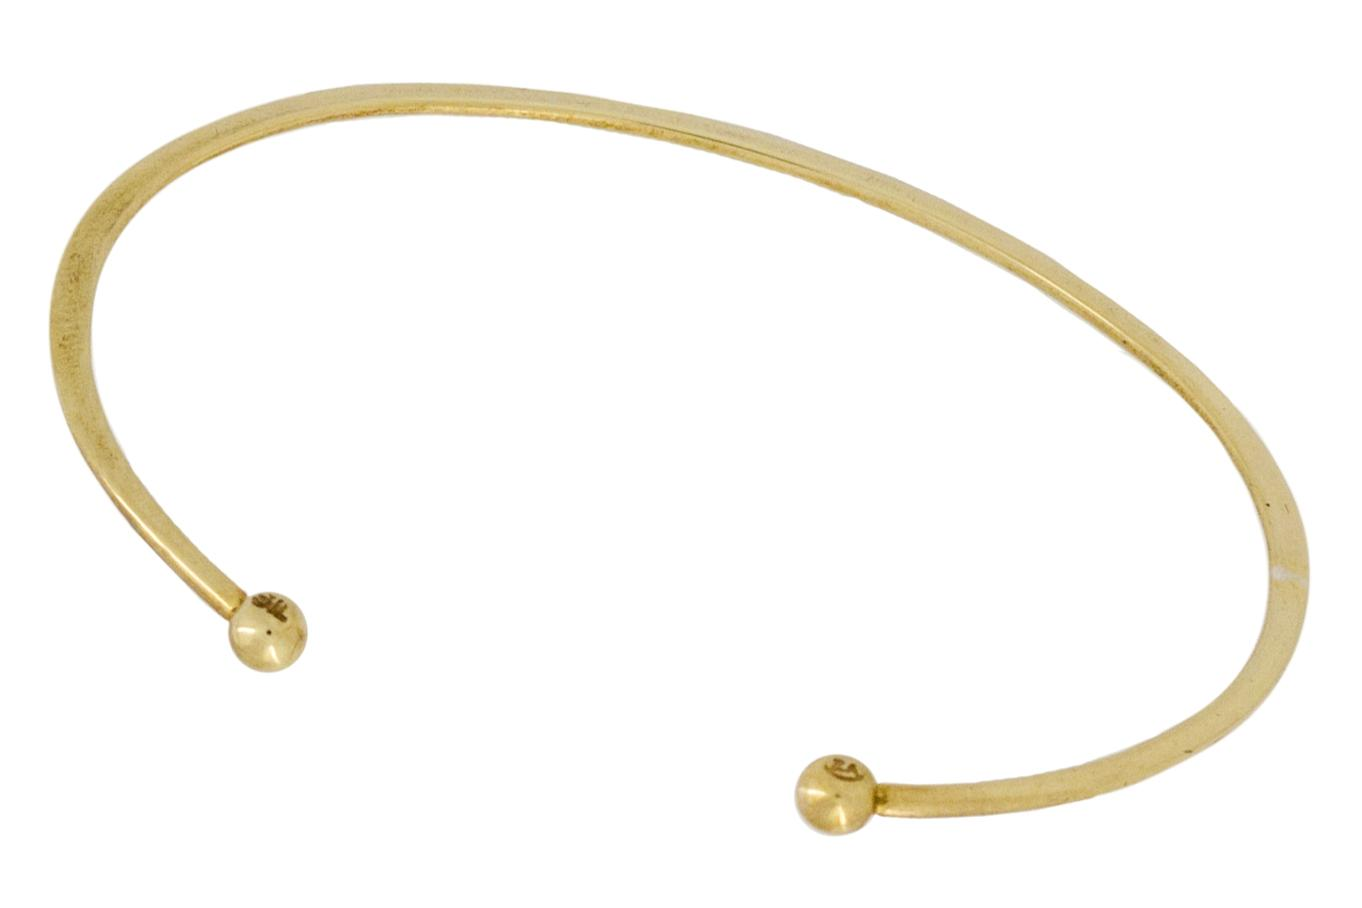 Silver Cuff with Ball Ends - Plated with Yellow Gold